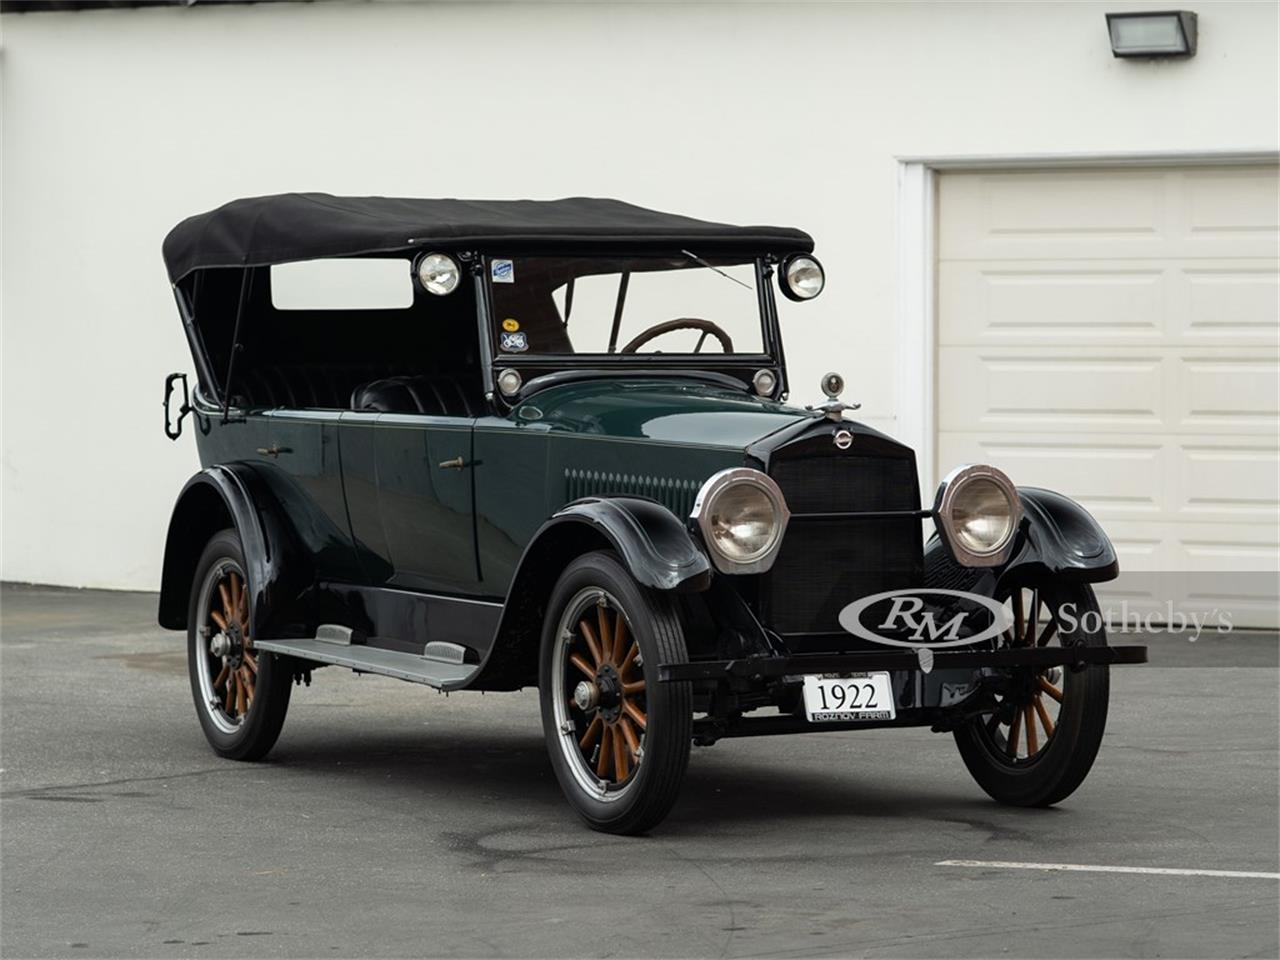 1922 Studebaker Big Six (CC-1382521) for sale in Online, California